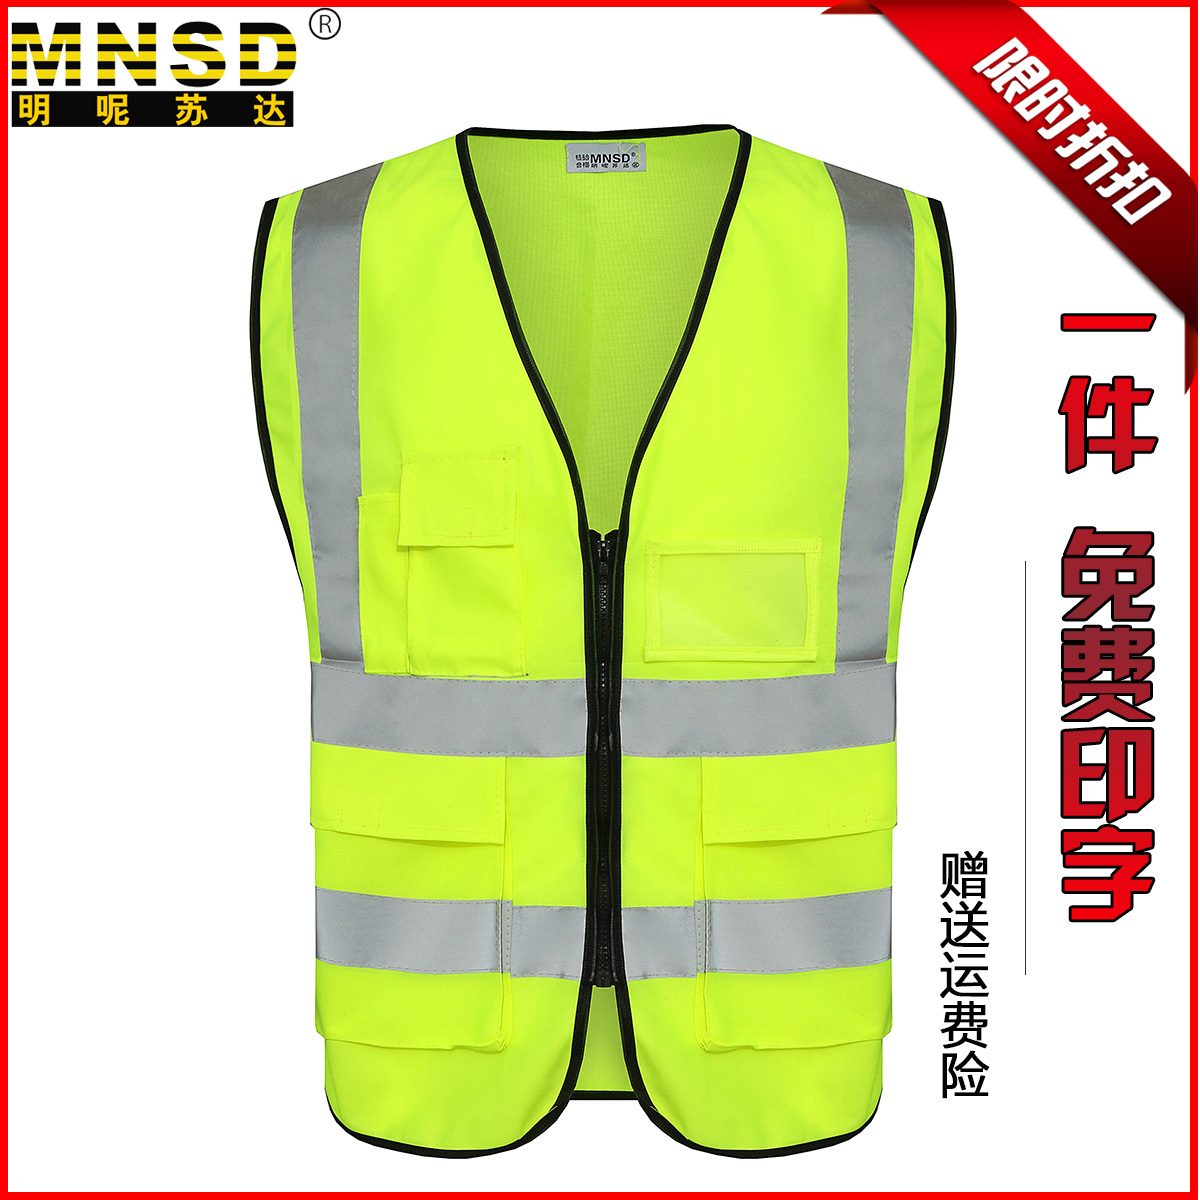 Mnsd reflective vest reflective vest reflective safety clothing riding traffic vest reflective clothing construction sanitation